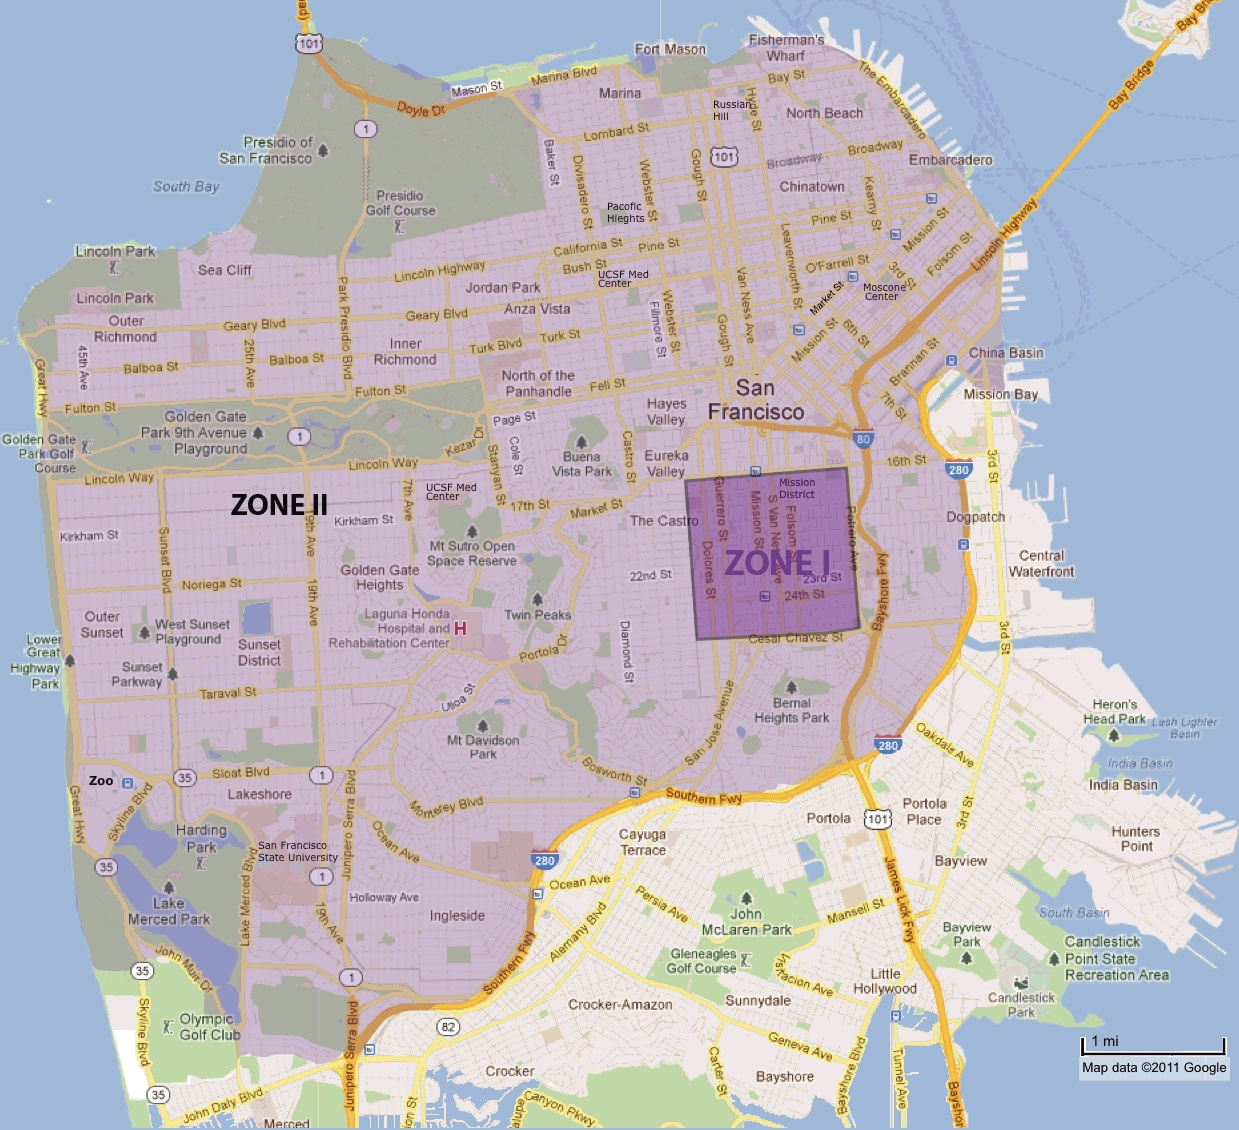 Map of San Francisco with two zones marked I and II